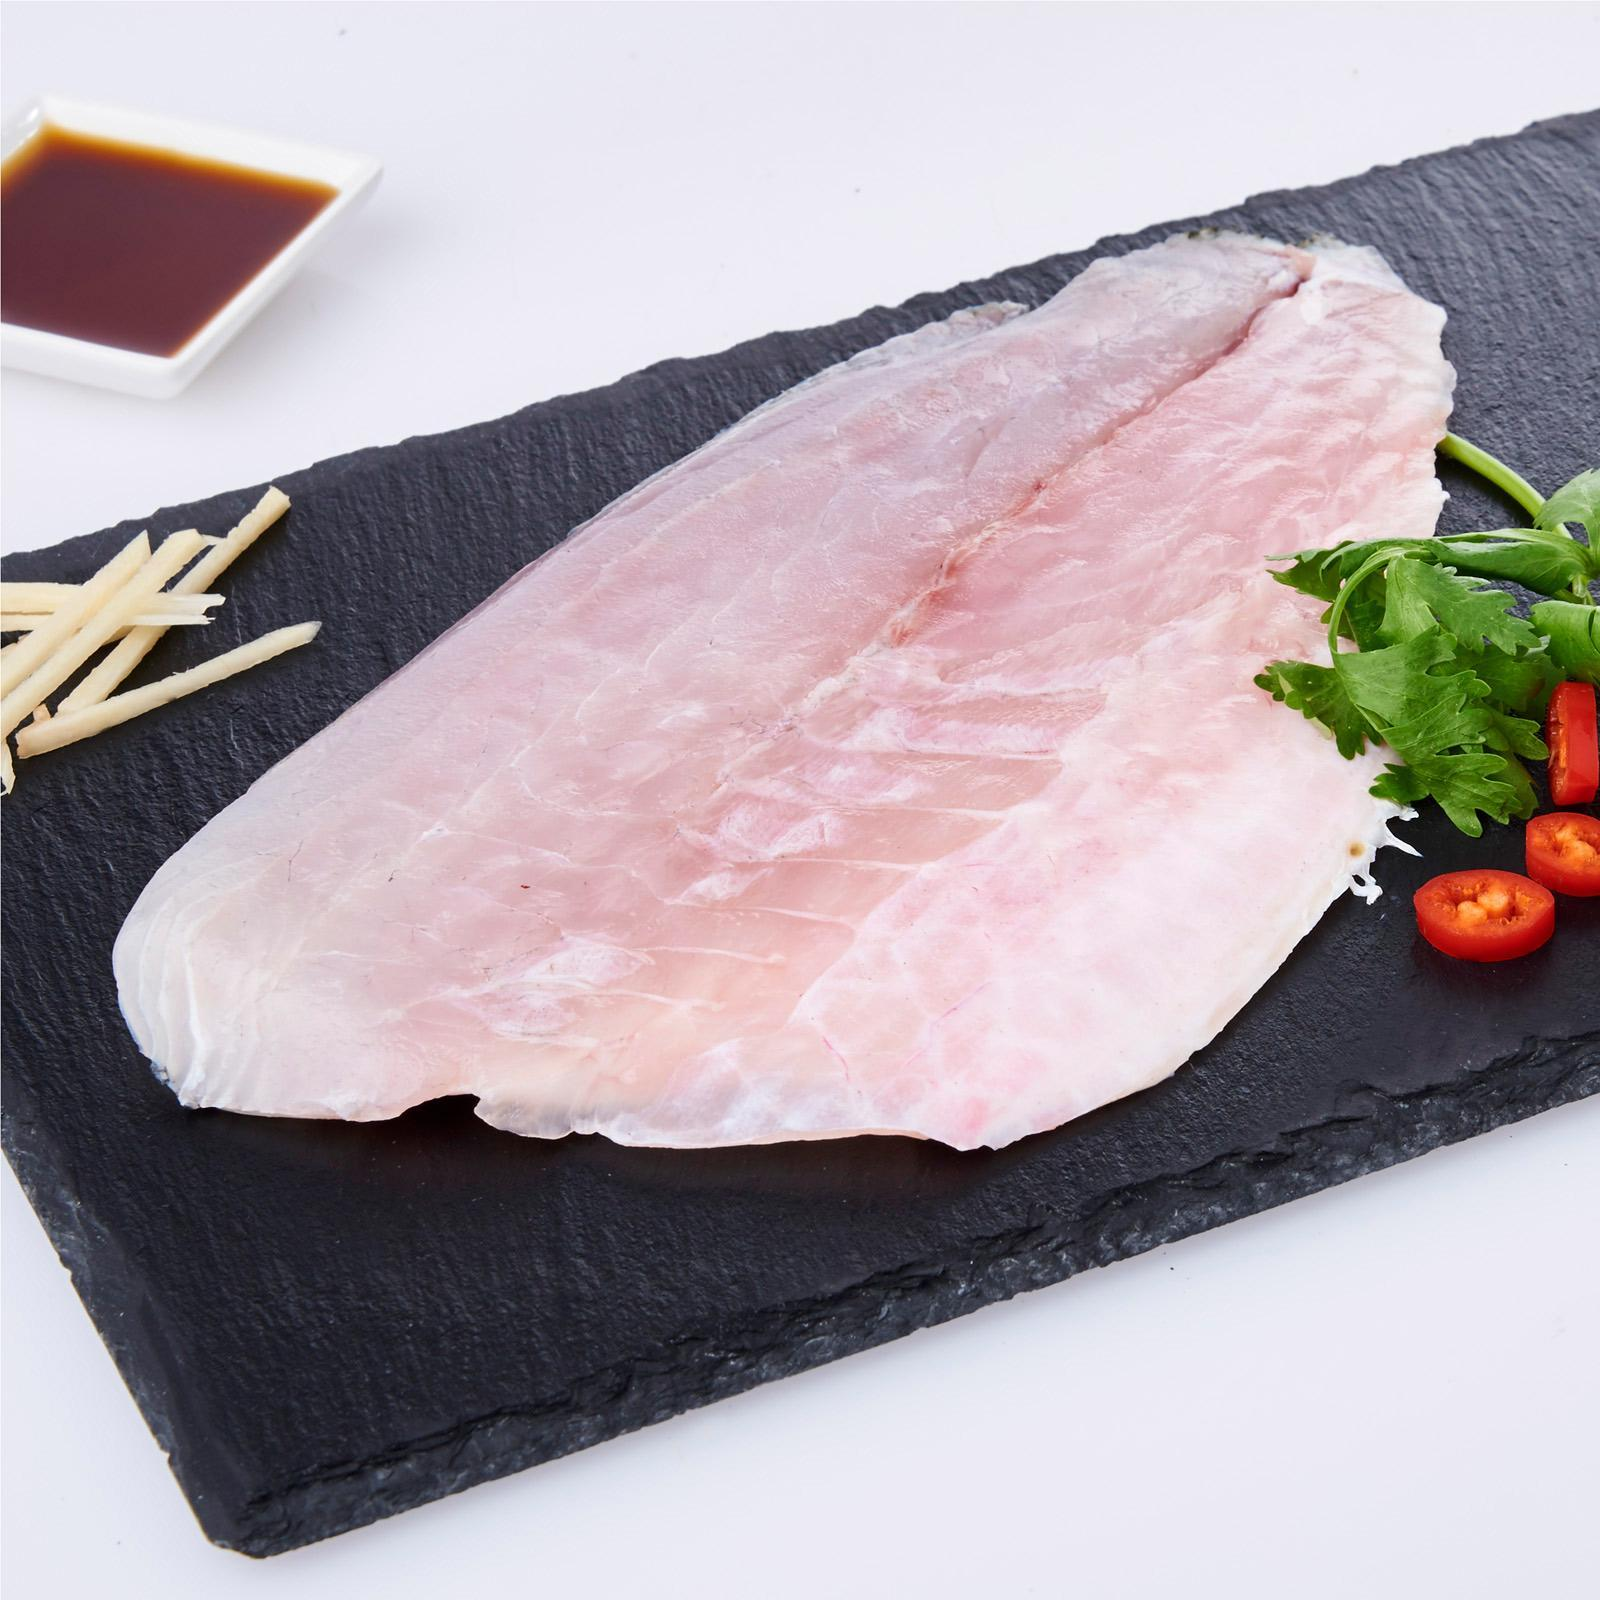 Serve By Hai Sia Seafood - Barramundi Fillet (seabass) By Redmart.